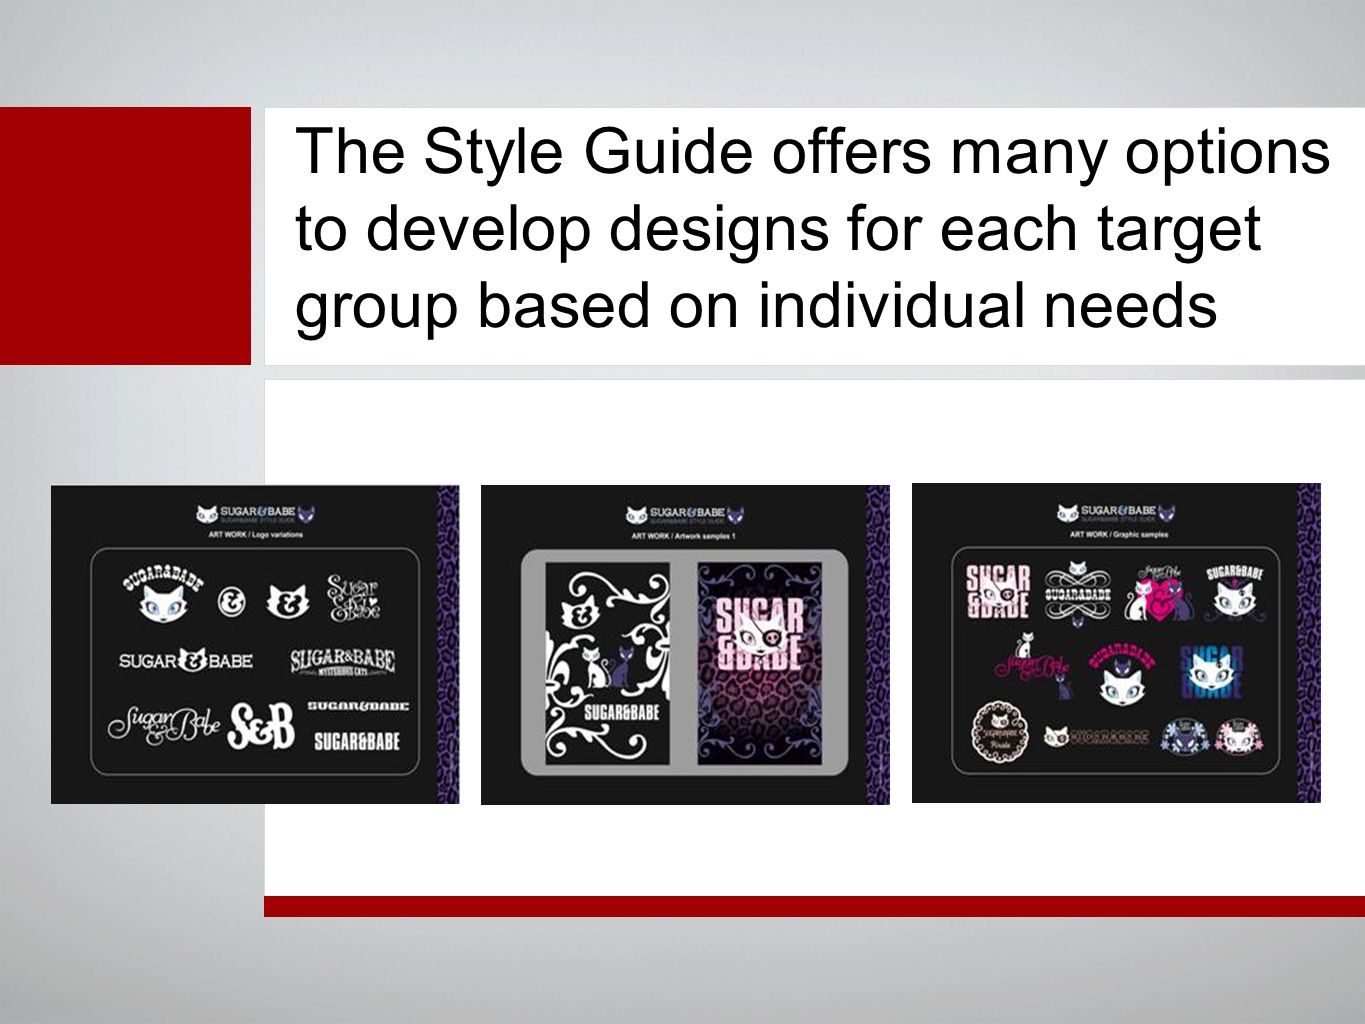 The Style Guide offers many options to develop designs for each target group based on individual needs